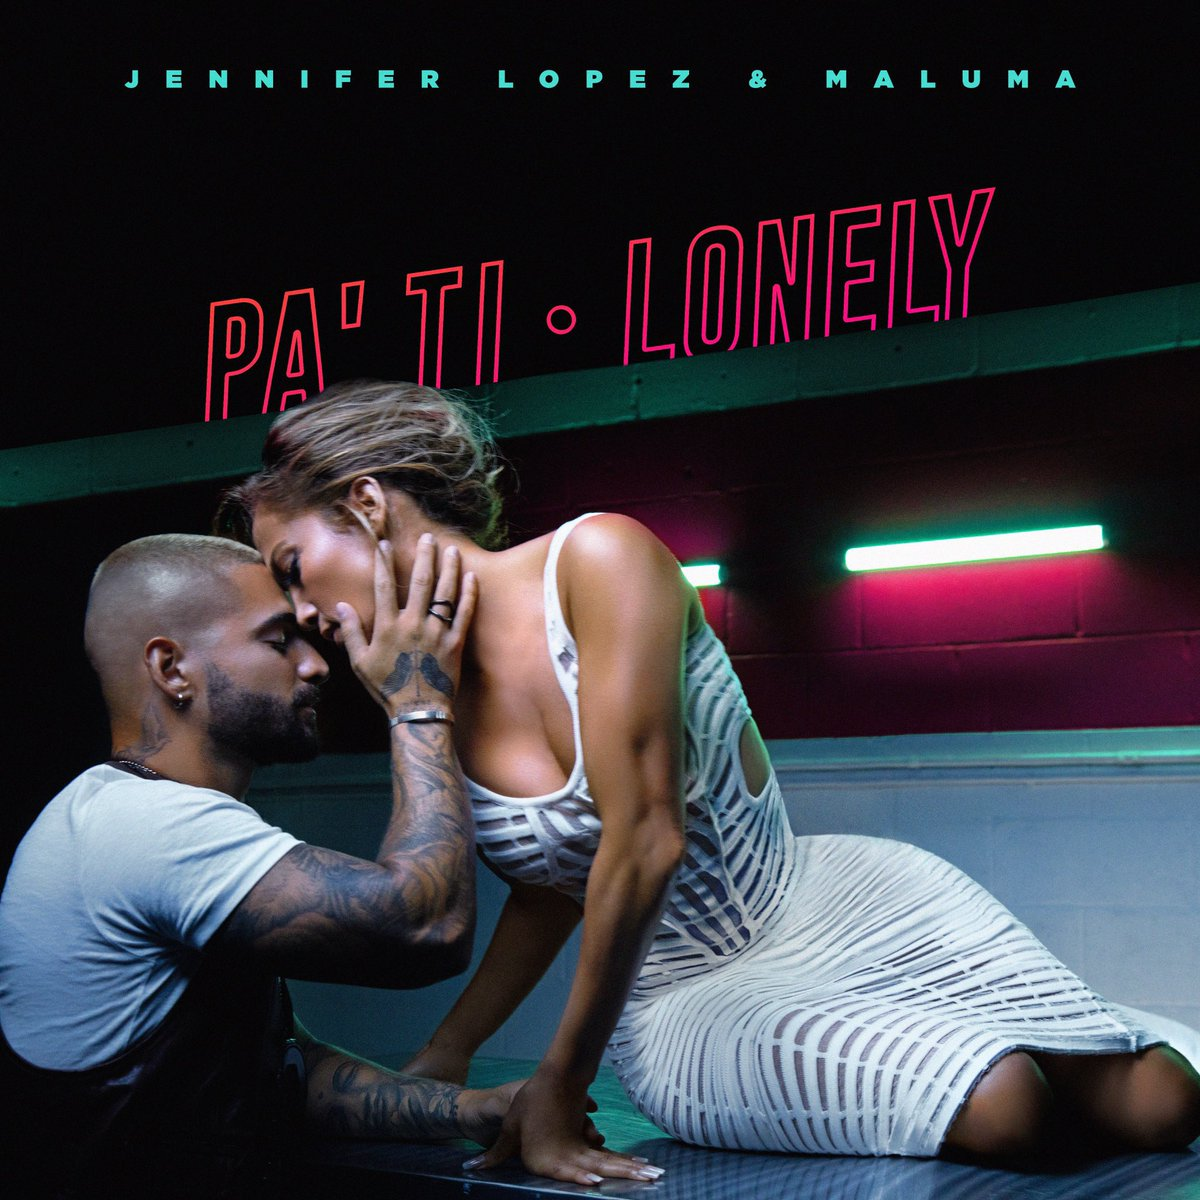 """IMPORTANT: @JLo & @maluma's 2-part collaboration """"Pa' Ti - Lonely"""" drops in an HOUR https://t.co/mSL9NESZTS https://t.co/7LVRFd7nRn"""